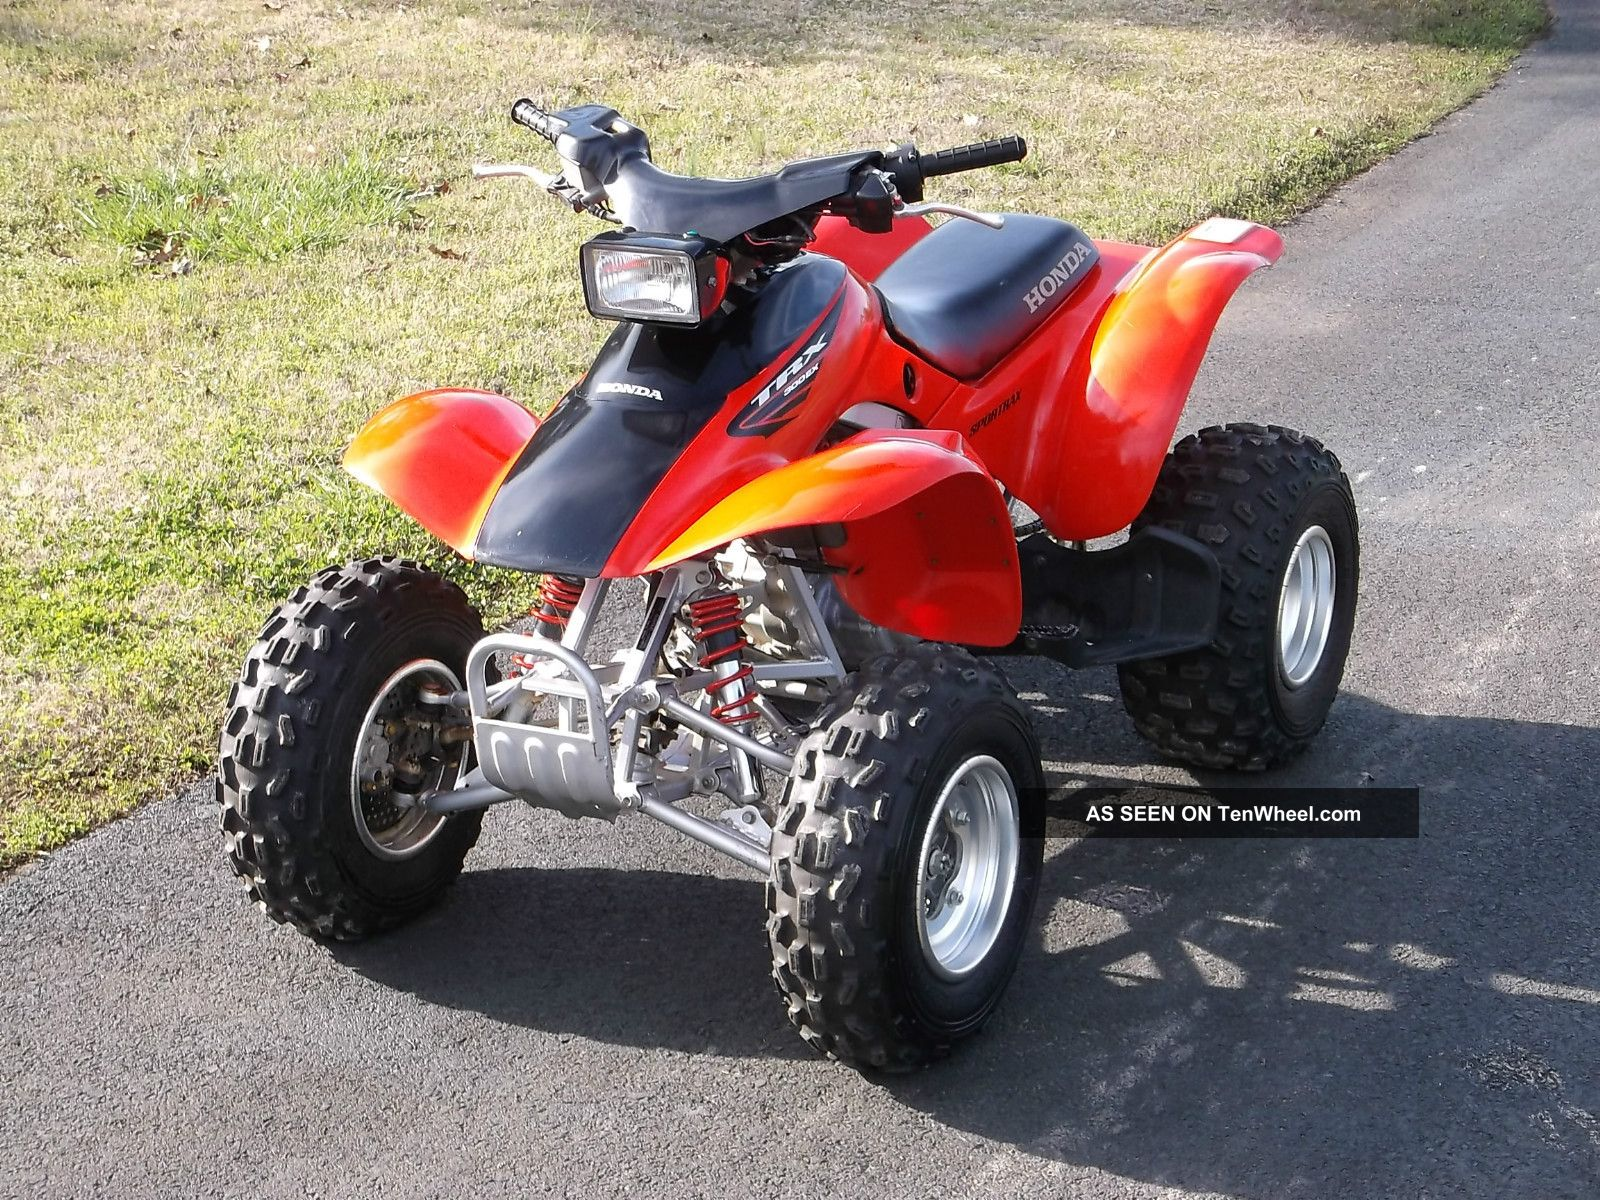 honda 400ex wiring schematic with Honda 300ex Rebuild Diagram on Wiring Diagram For 2001 Yamaha Warrior moreover Atc 200e Wiring Diagram as well 144401 Reverse Light in addition Honda Atv Wiring Diagrams further Honda Fourtrax 300ex Wiring Diagram.